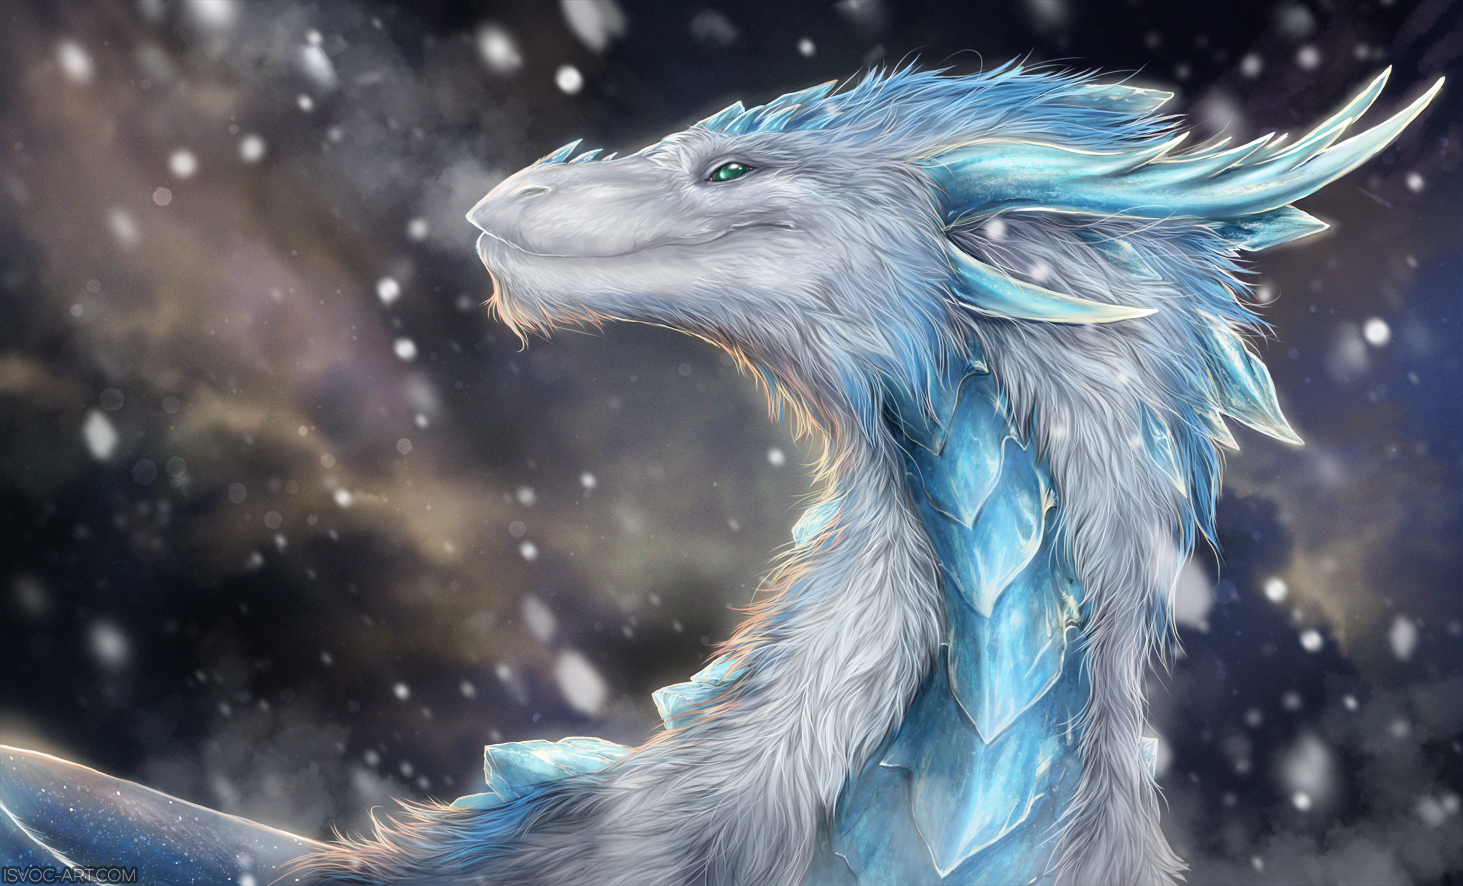 e926 blue_scales detailed_background digital_media_(artwork) dragon feral fur furred_dragon green_eyes horn isvoc scales snow solo white_fur